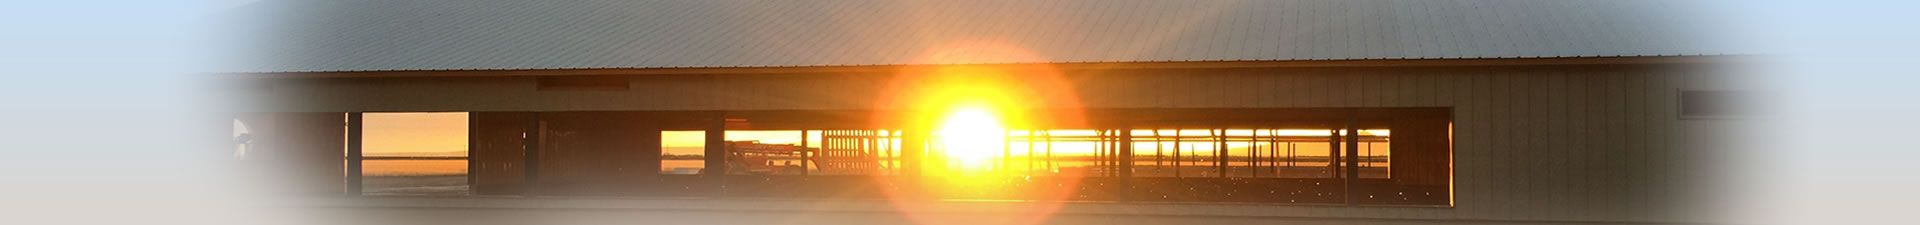 Sunrise through barn opening - Distributors